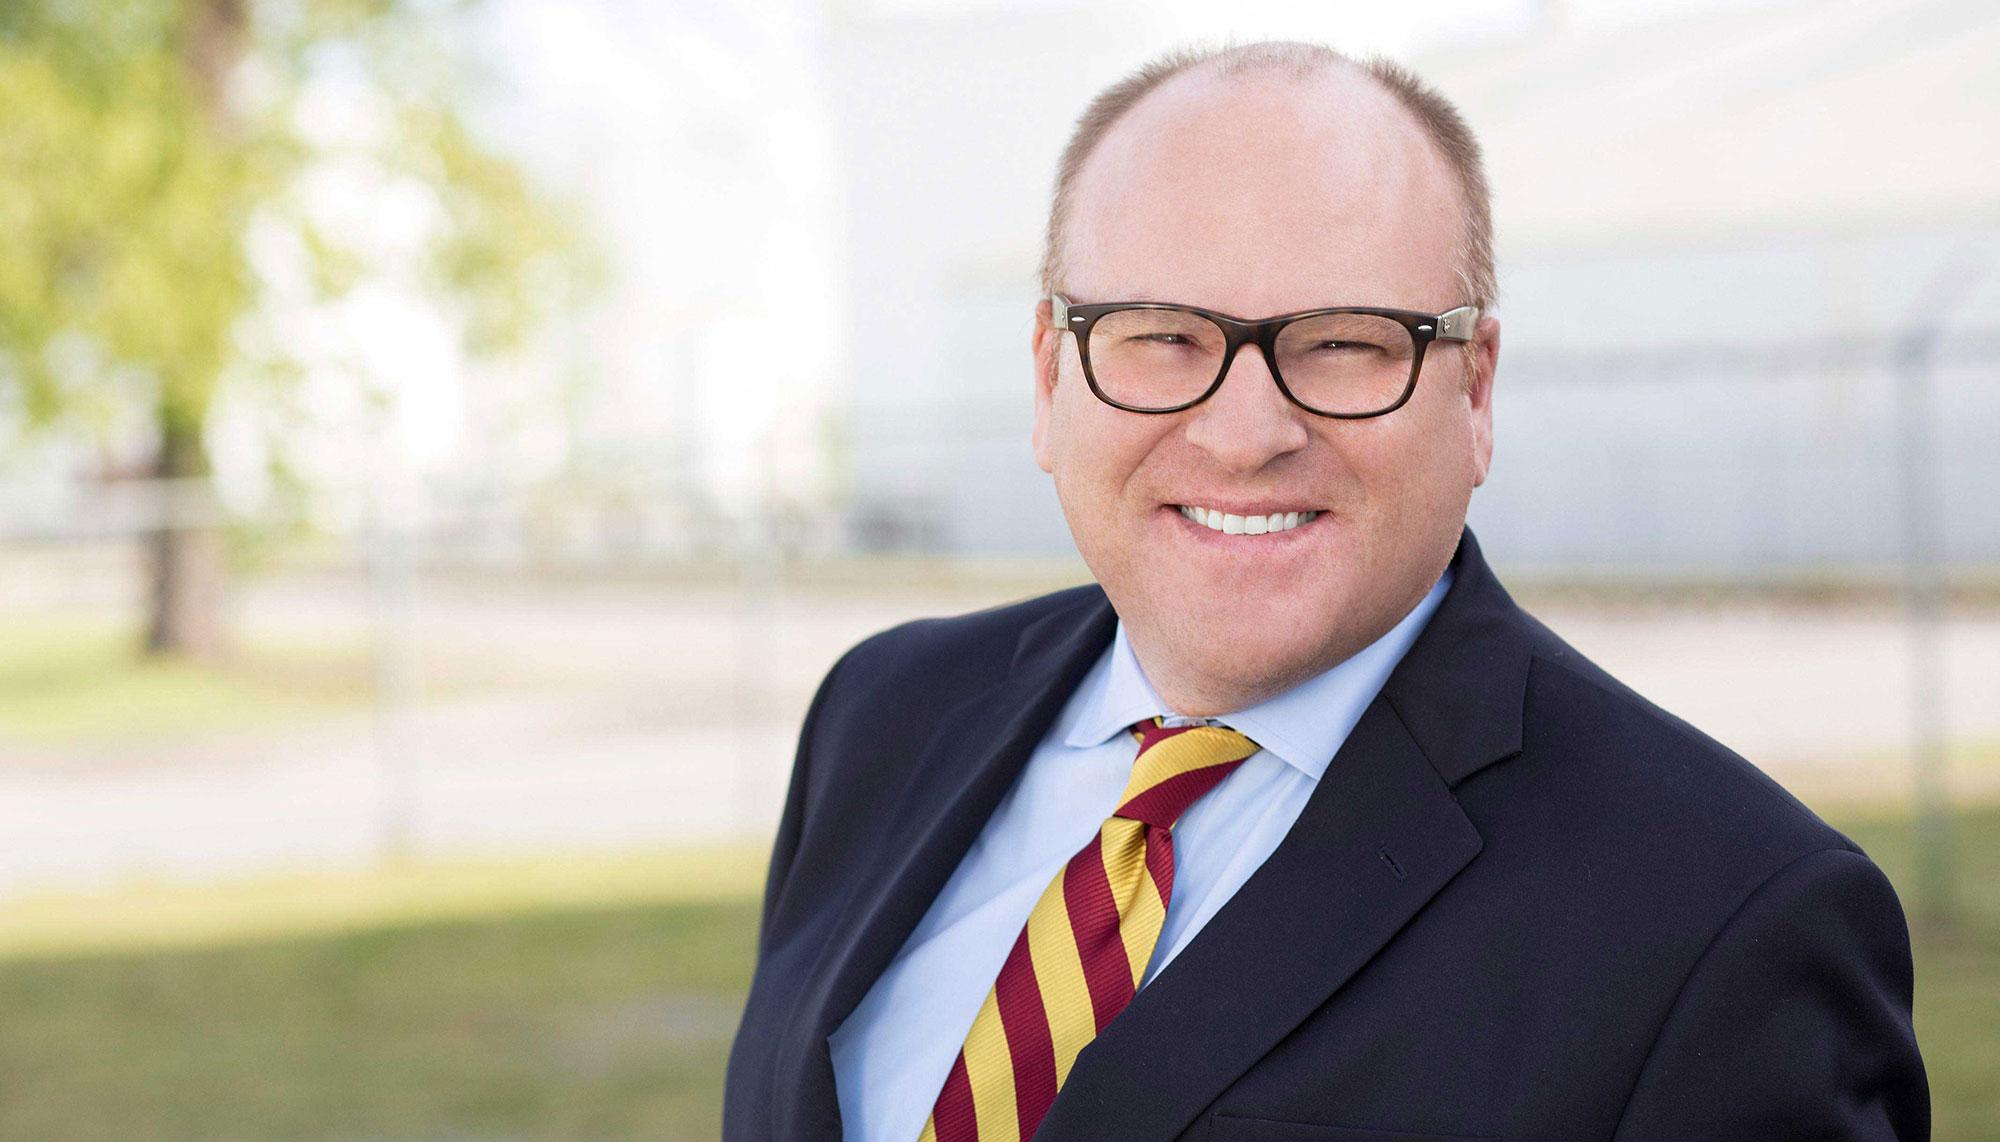 Rodney S. Hanley named sixth chancellor of the University of Minnesota, Morris	Rodney S. Hanley named sixth chancellor of the University of Minnesota, Morris